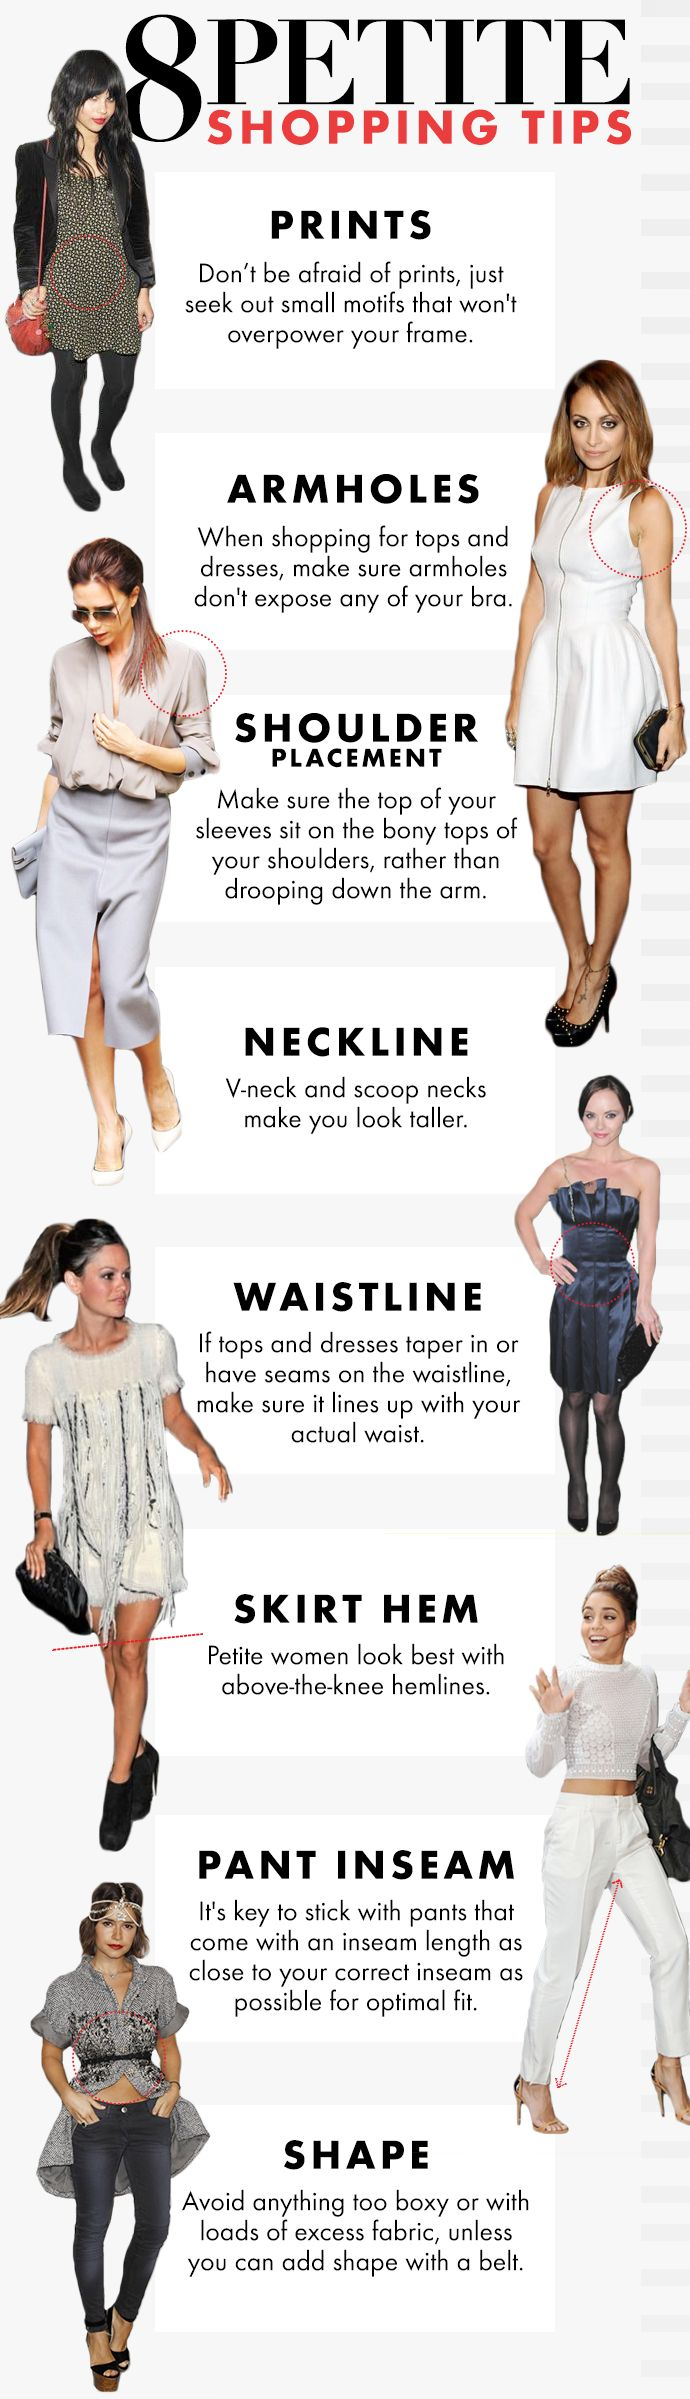 How to shop for petite clothes - expert tips that work